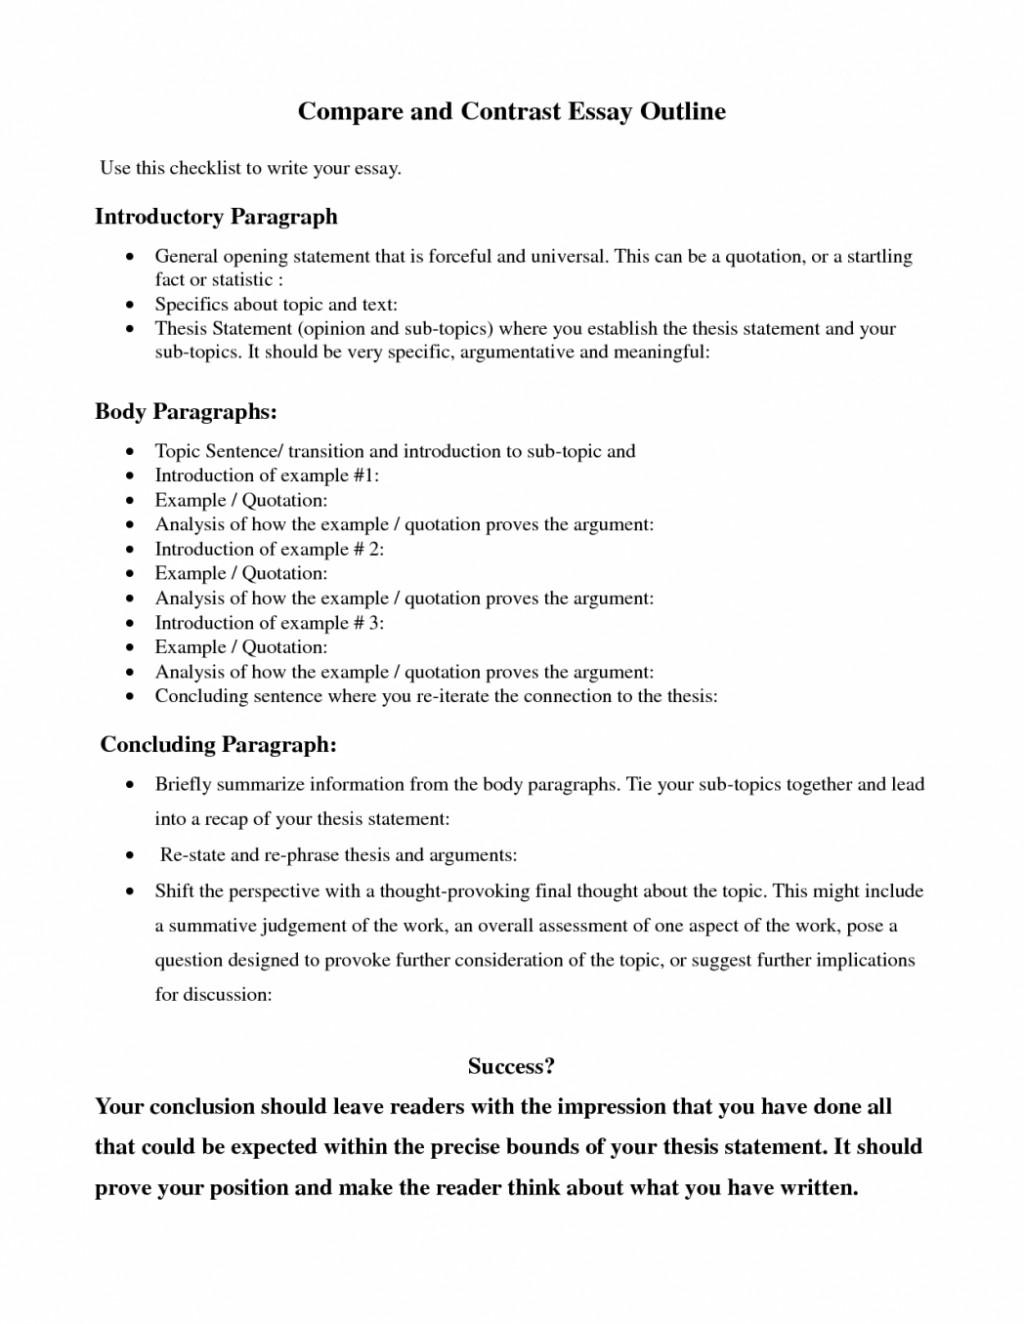 008 Essays About Success Writing Comparison Essay How To Write Better Amazon Thesis Statement For Compare And Contrast Template Qak The Guardian In English Book Reddit By Bryan Greetham Sensational On A Successful Person Is Someone Who Rich Life Man's Final Goal Secret Of Large